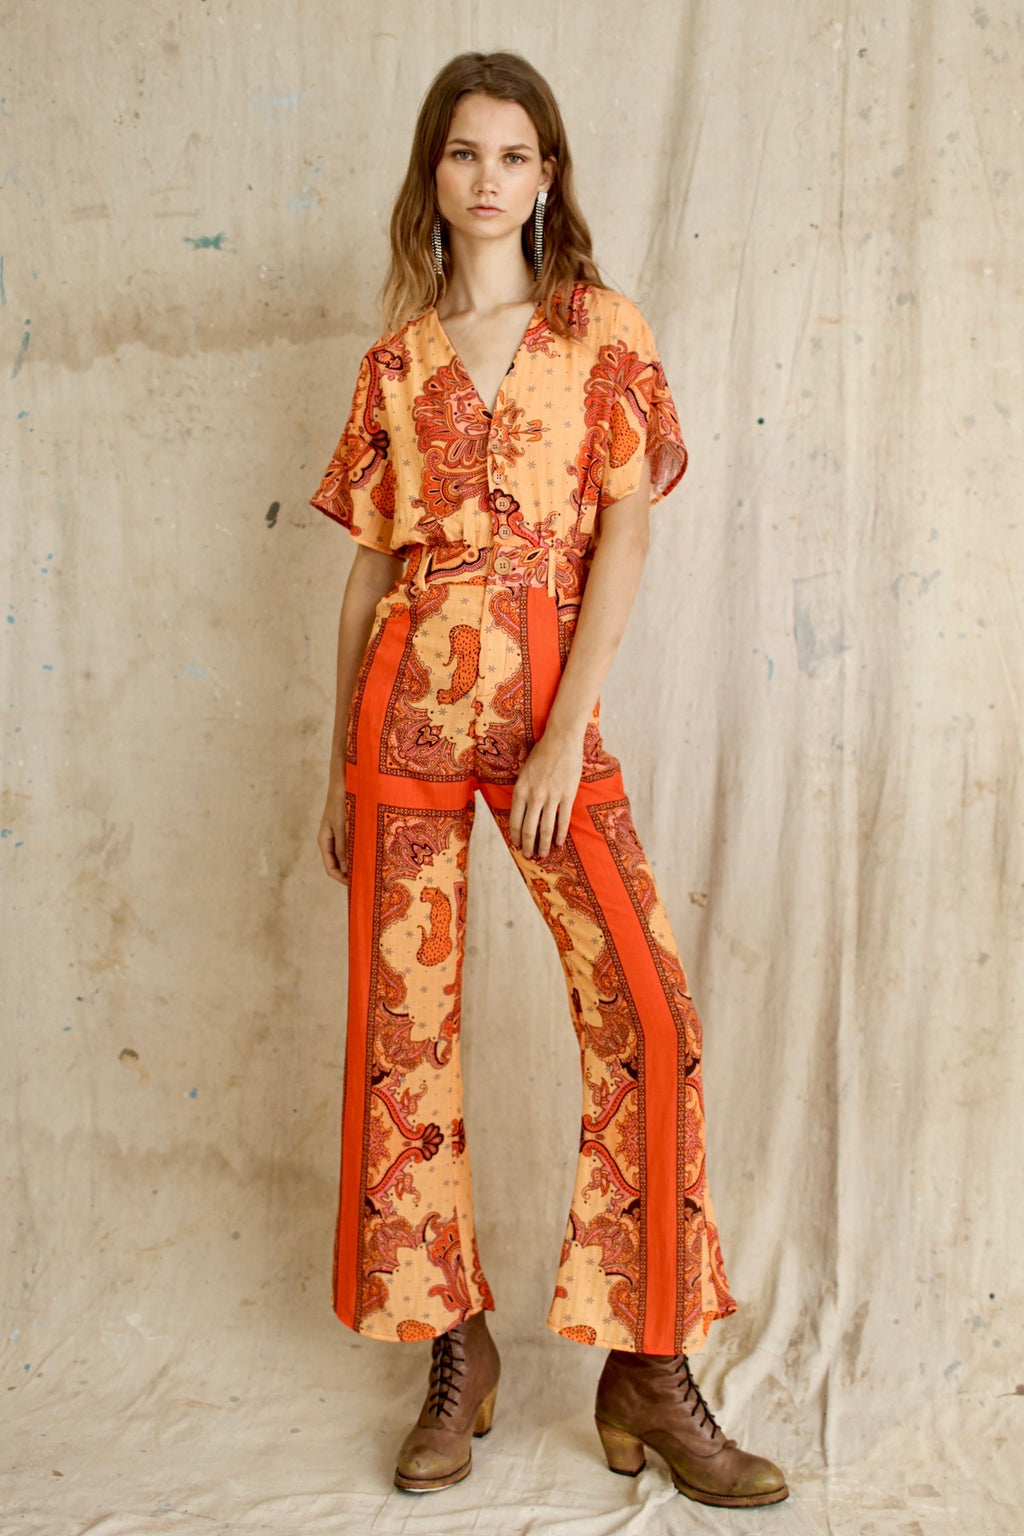 ginger-frank - Levitation Jumpsuit - Lenni the label